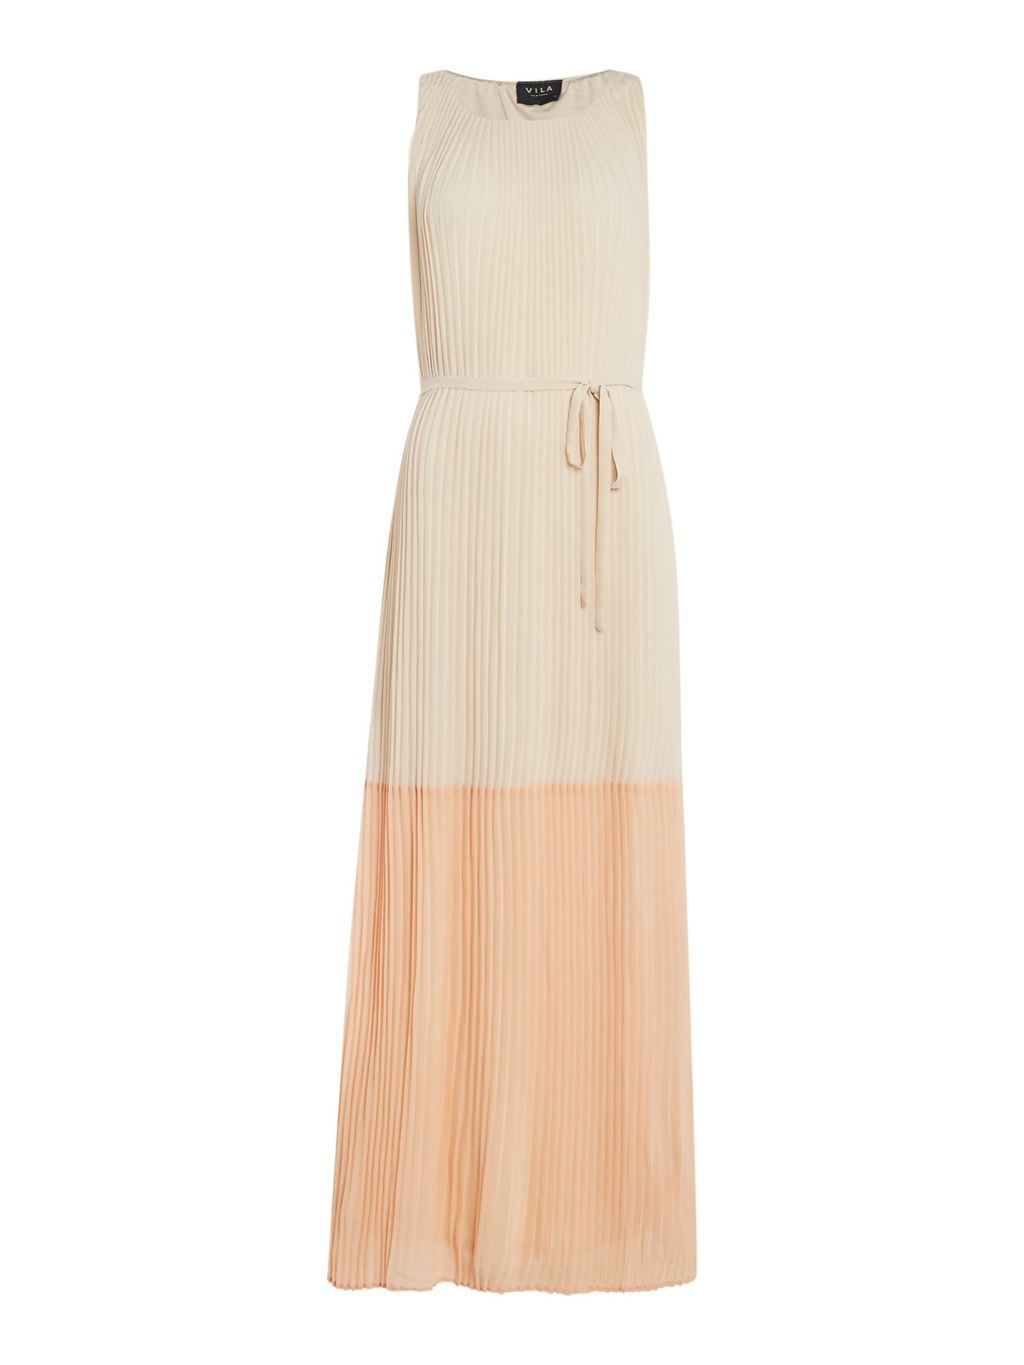 Pleated Maxi, Cream - sleeve style: sleeveless; style: maxi dress; length: ankle length; waist detail: belted waist/tie at waist/drawstring; predominant colour: ivory/cream; secondary colour: nude; occasions: evening; fit: body skimming; fibres: polyester/polyamide - 100%; neckline: crew; sleeve length: sleeveless; pattern type: fabric; pattern: colourblock; texture group: other - light to midweight; multicoloured: multicoloured; season: s/s 2016